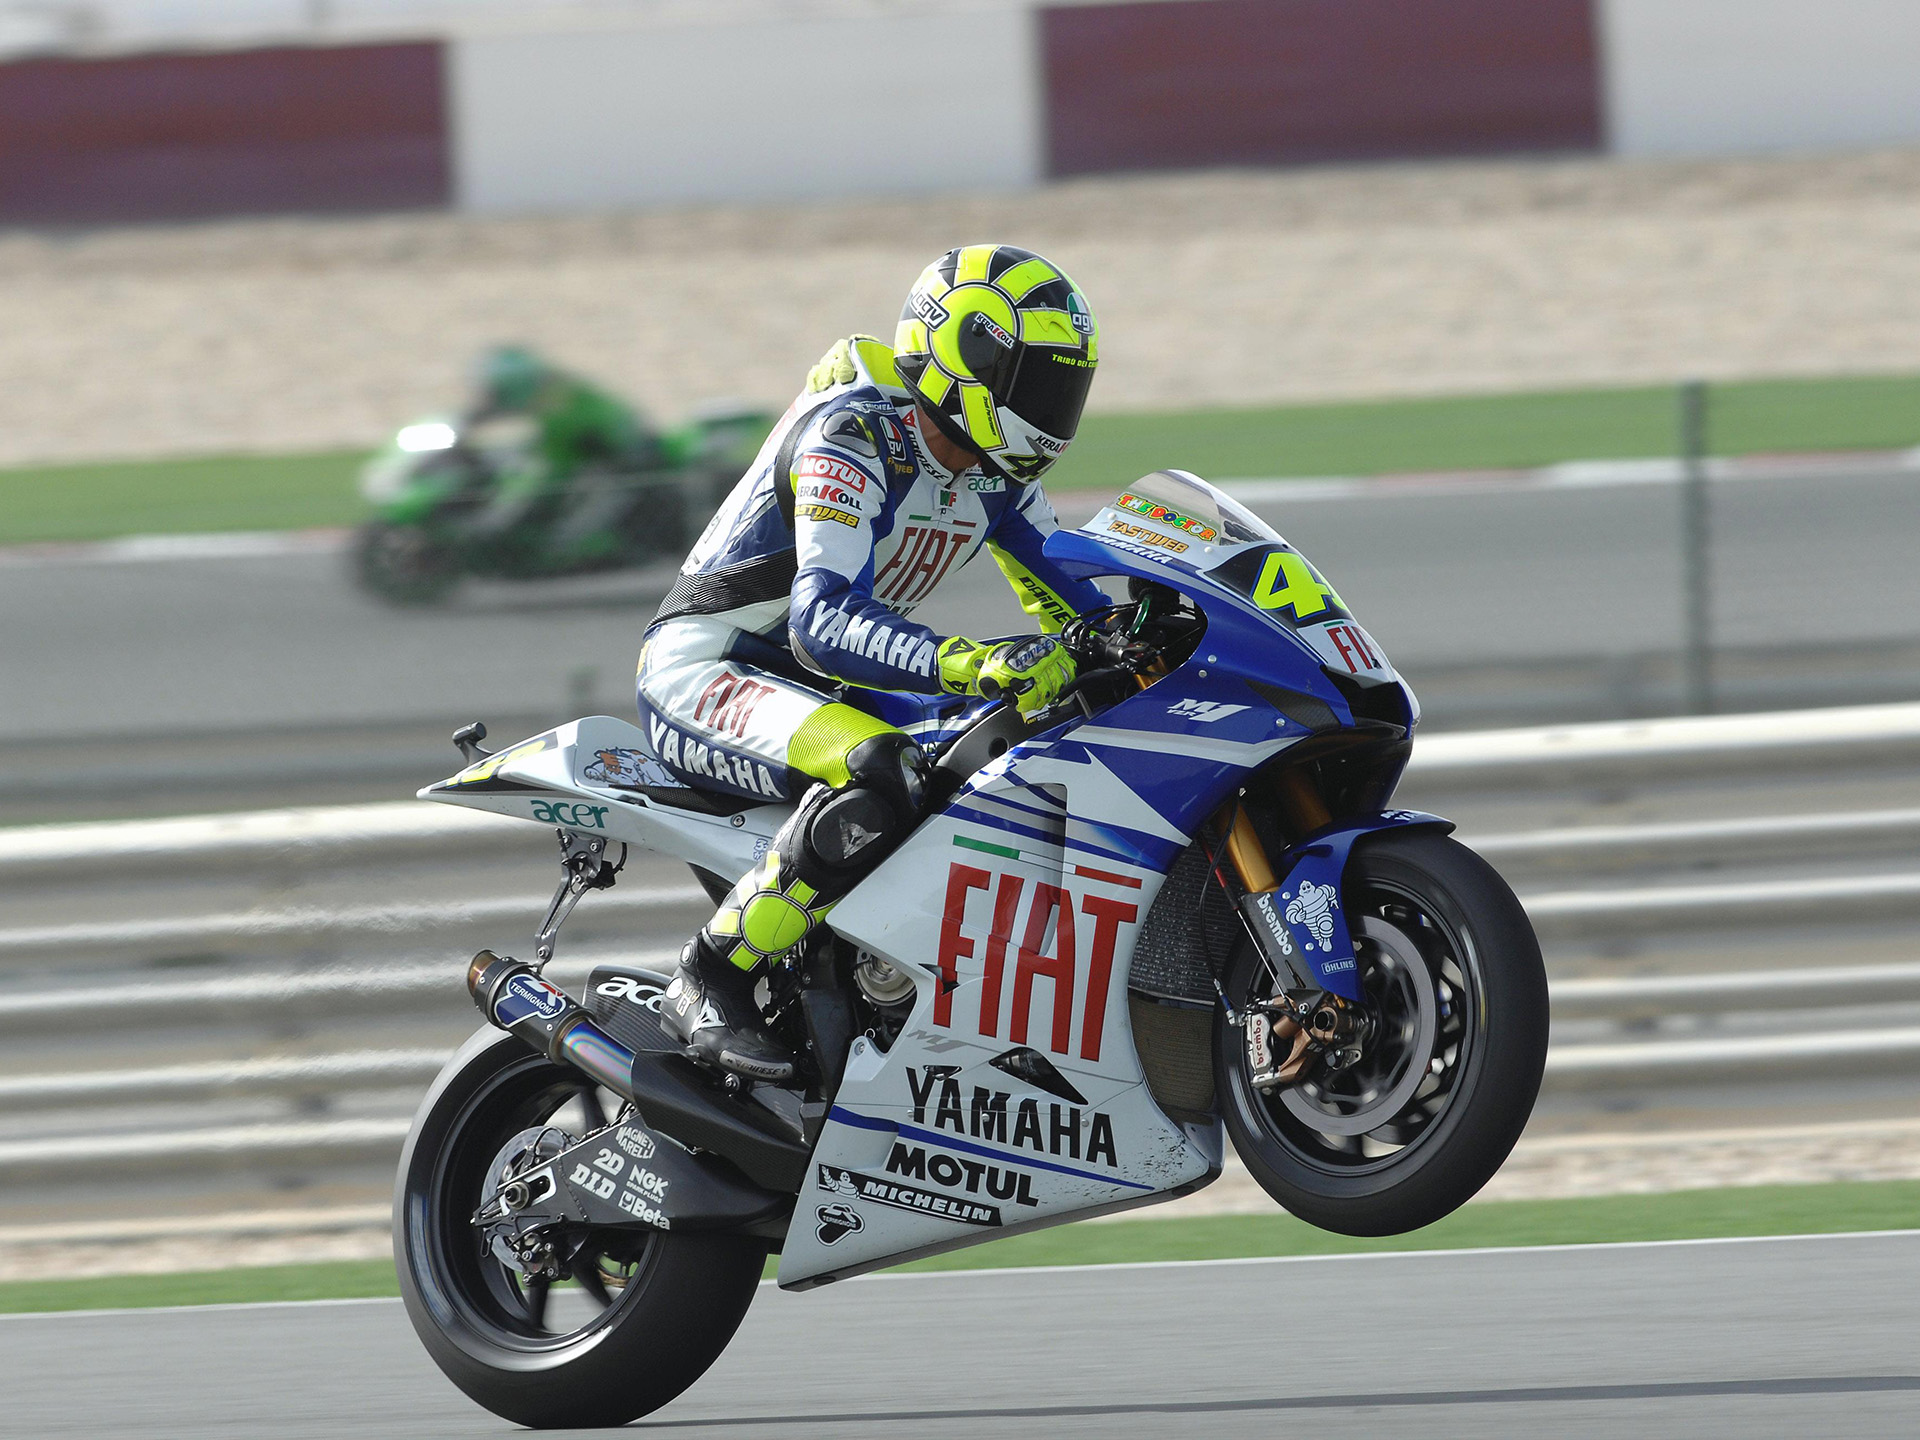 yamaha yzr-m1 picture # 45511 | yamaha photo gallery | carsbase